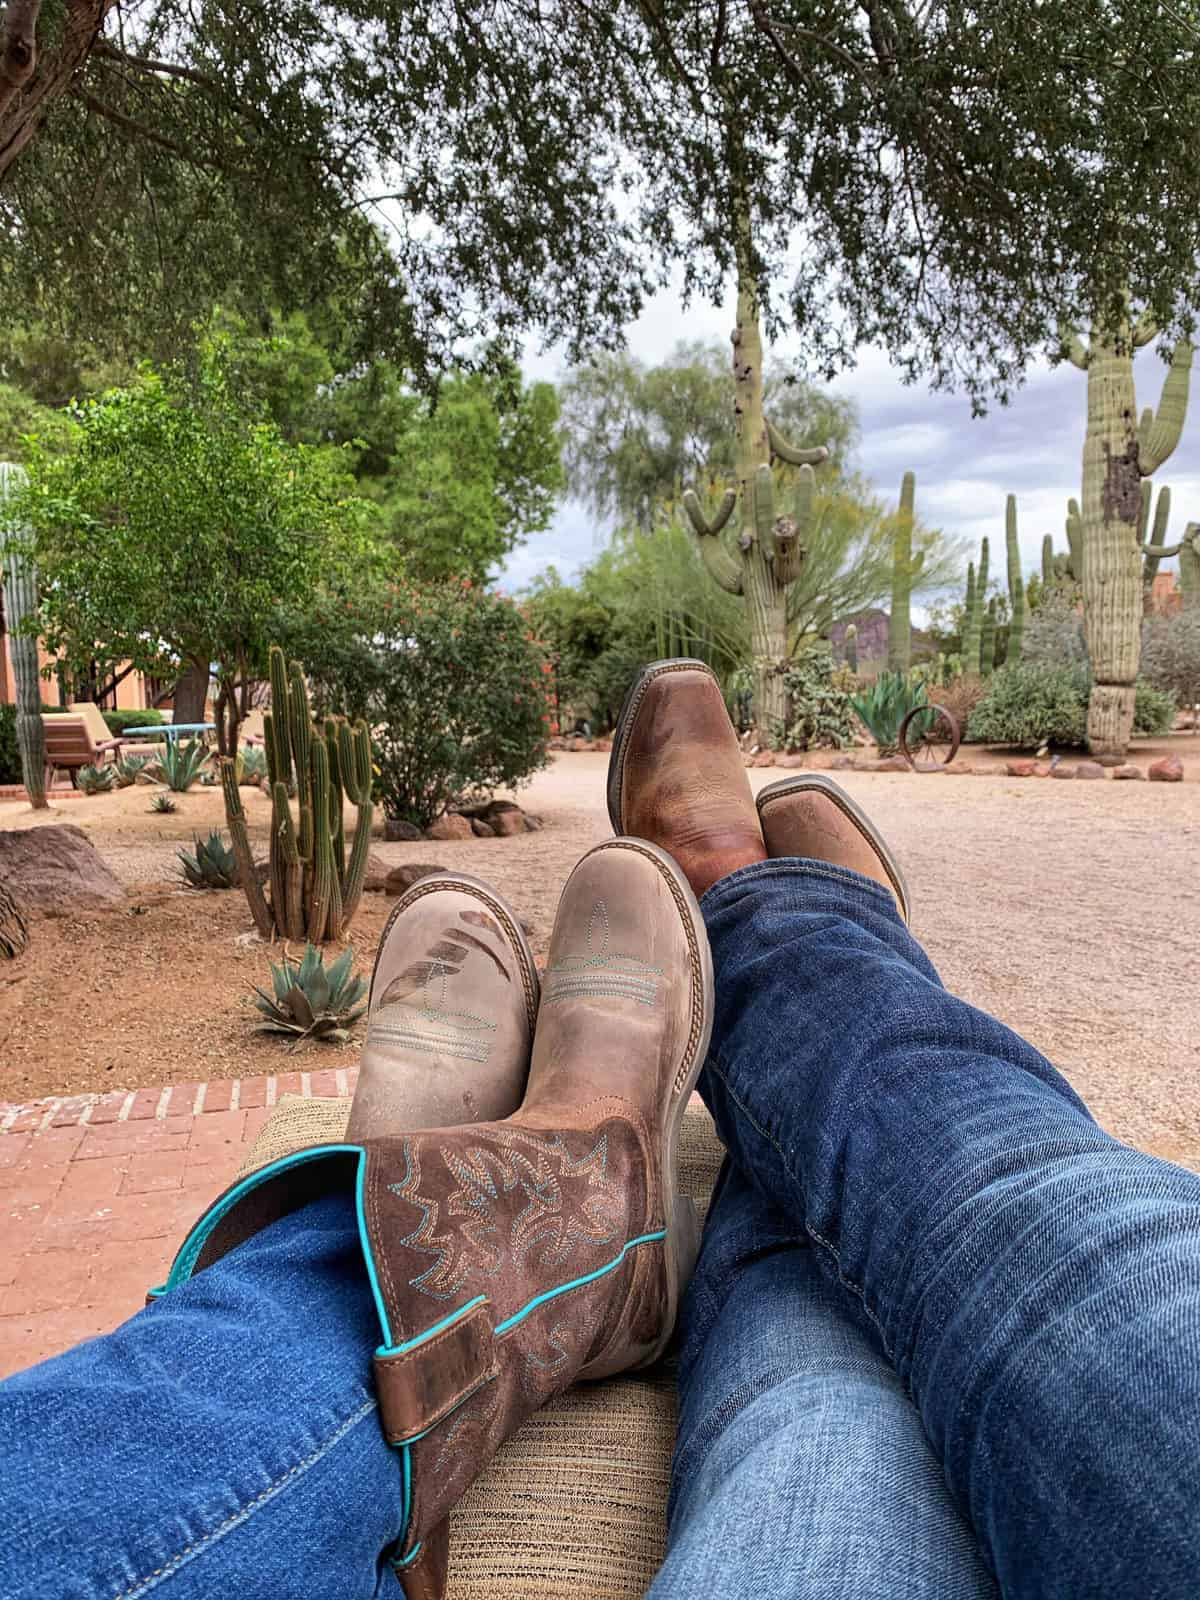 A person sitting under a tree showing cowboy boots